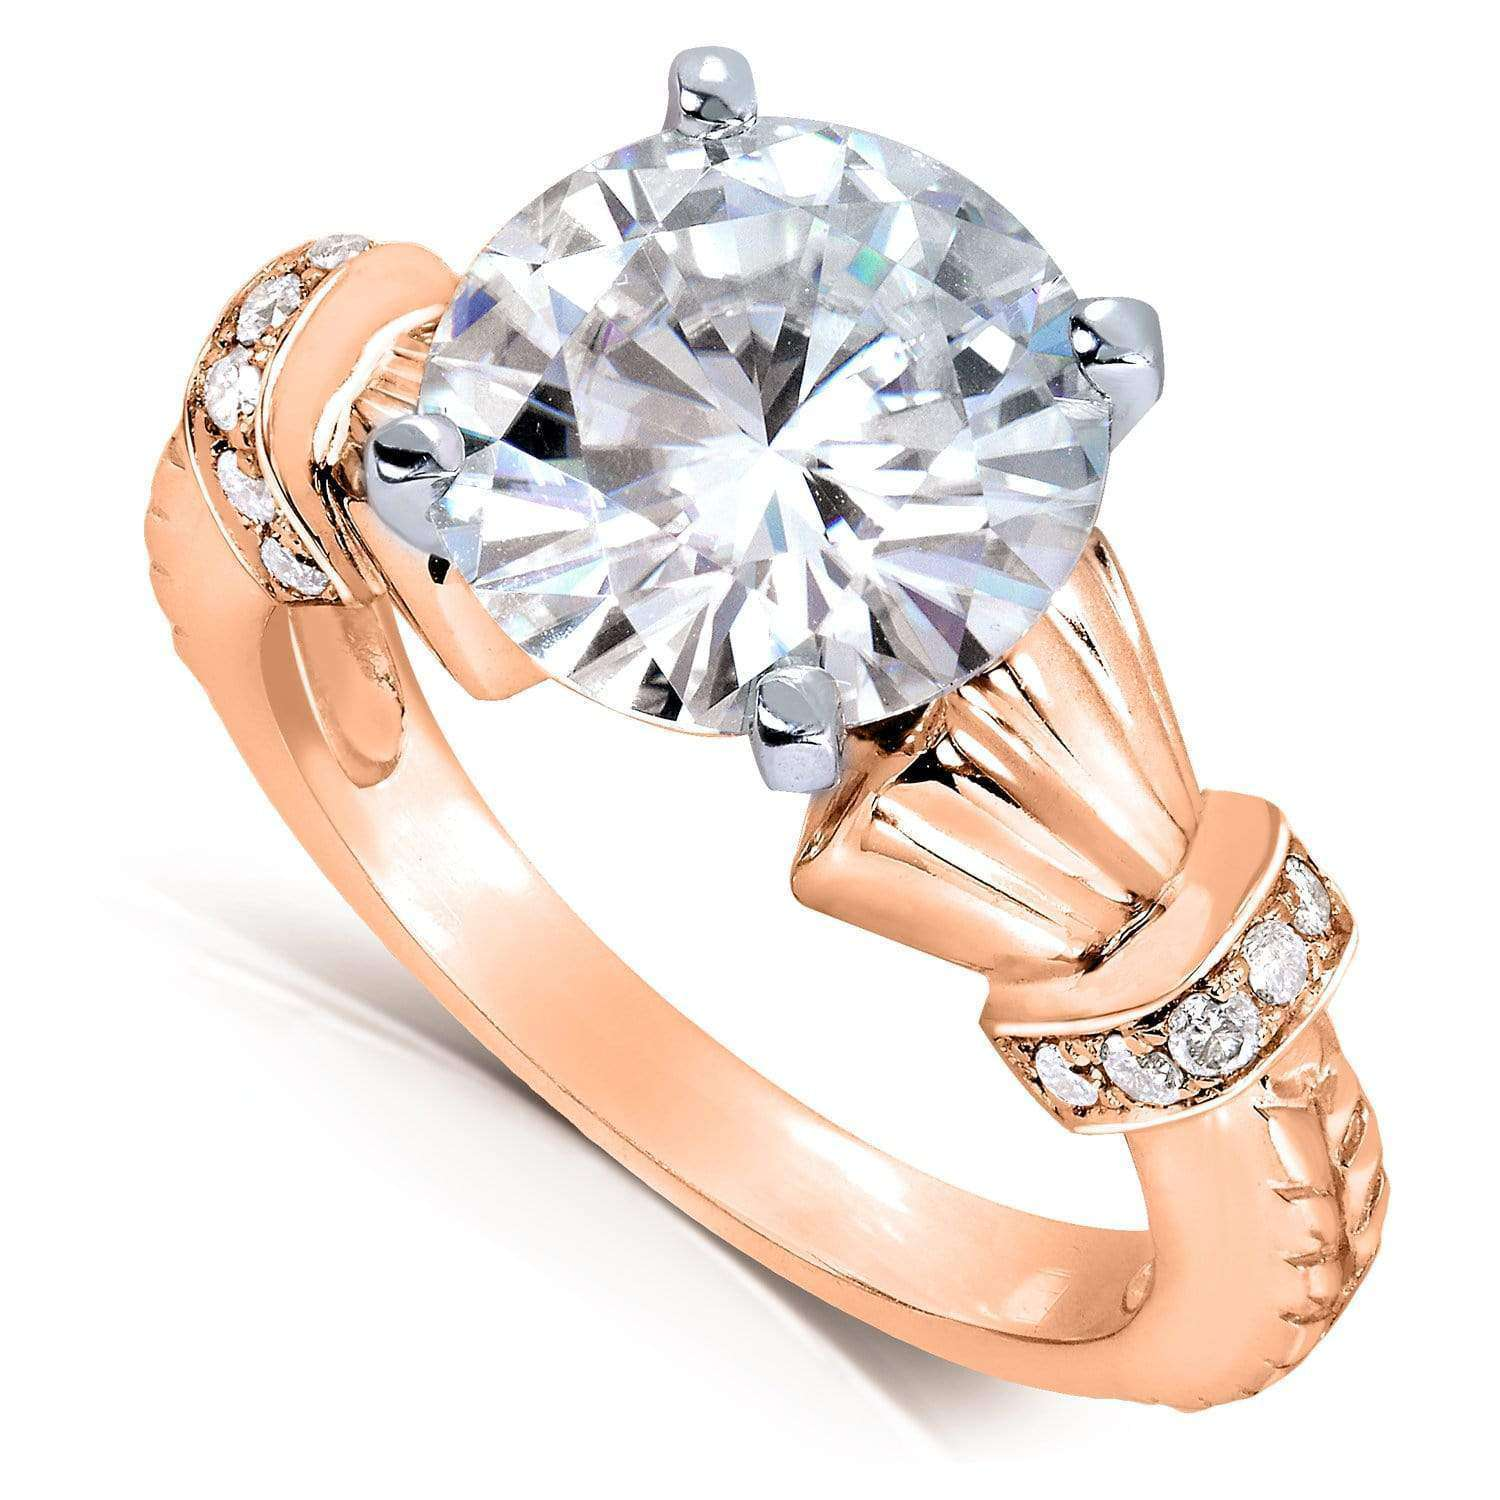 Reviews Round-cut Moissanite Engagement Ring with Diamond 3 1/4 Carat 14k Gold - rose-gold 6.5